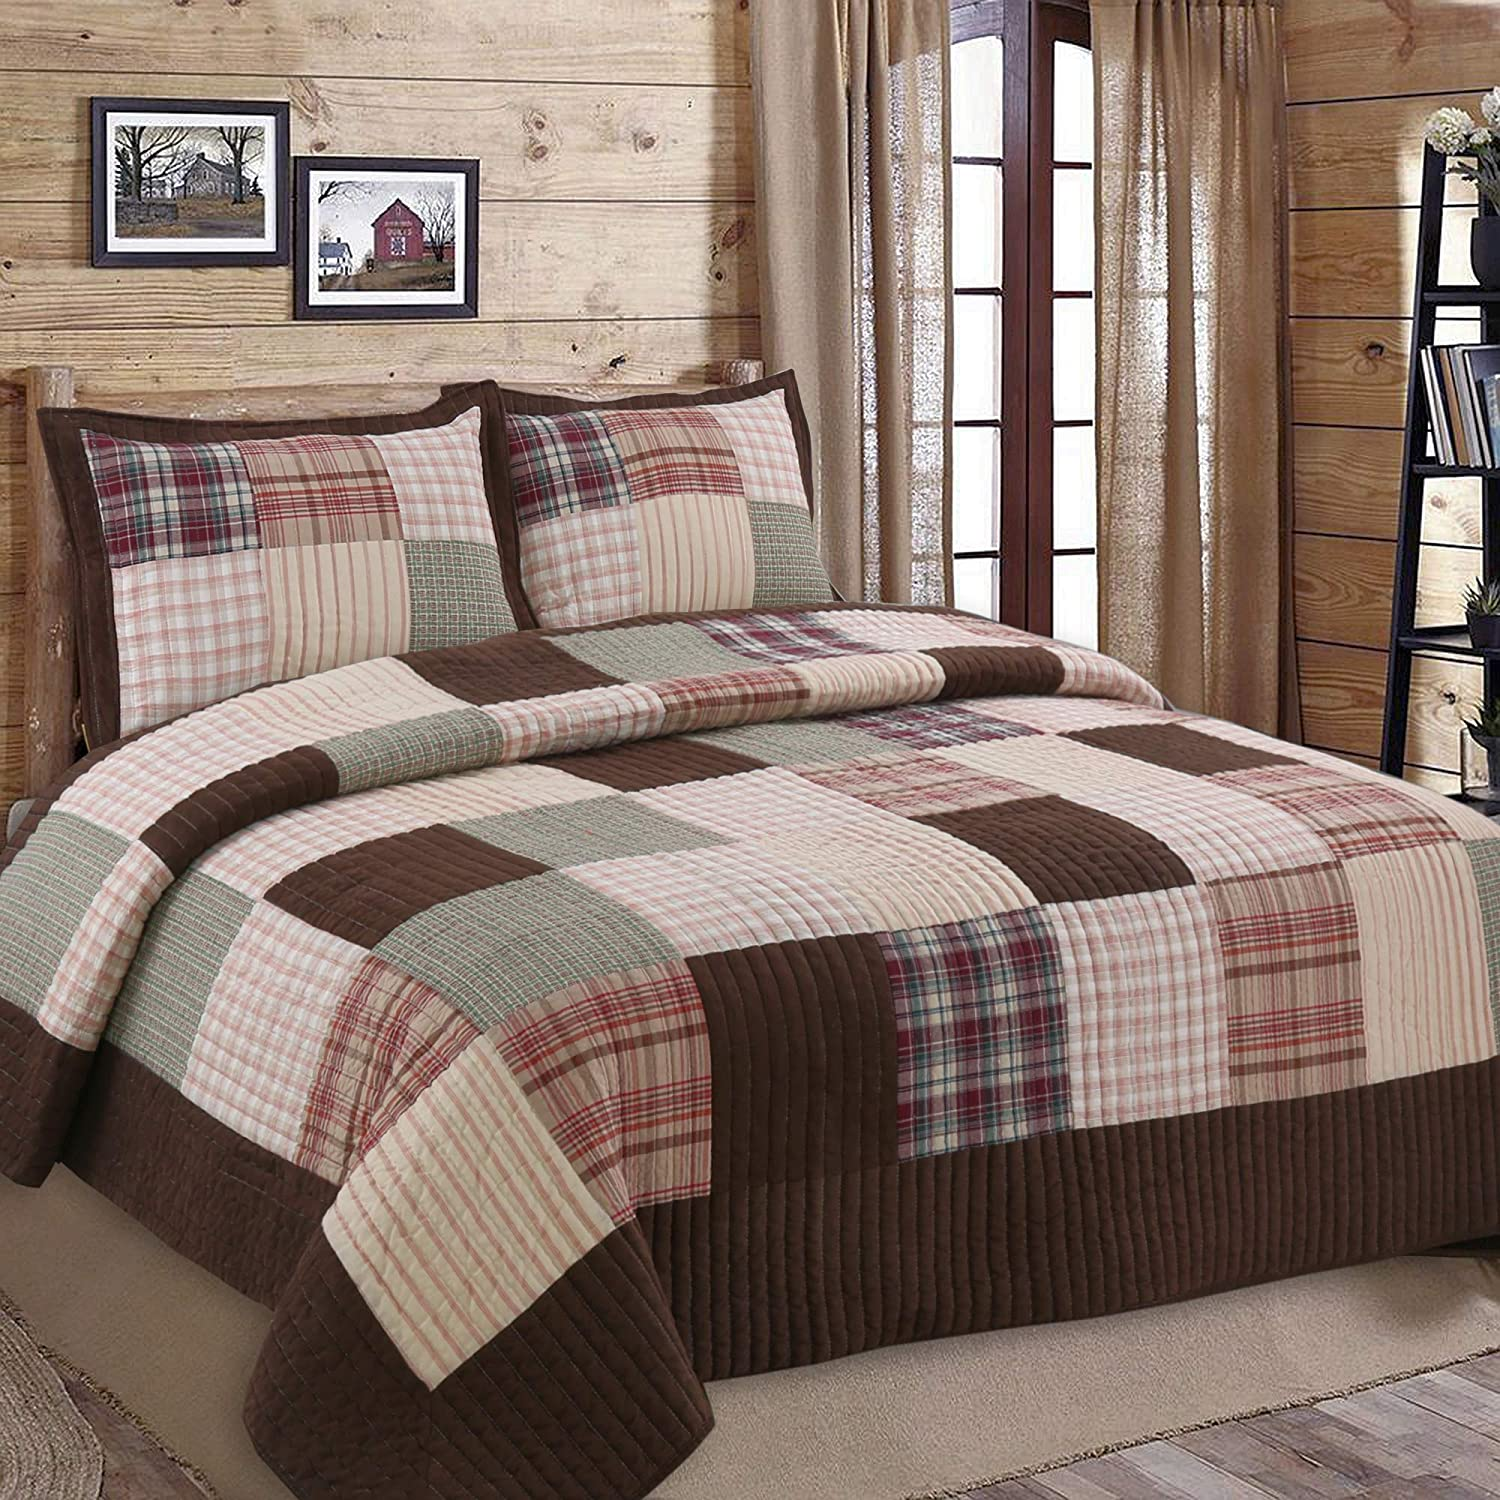 Cozy Line Home Fashions Brody Quilt Bedding Set, Chocolate Brown Plaid Grid Striped Real Patchwork,Reversible Coverlet, Bedspread Set for Men (Brown Grid, Twin - 2 Piece)